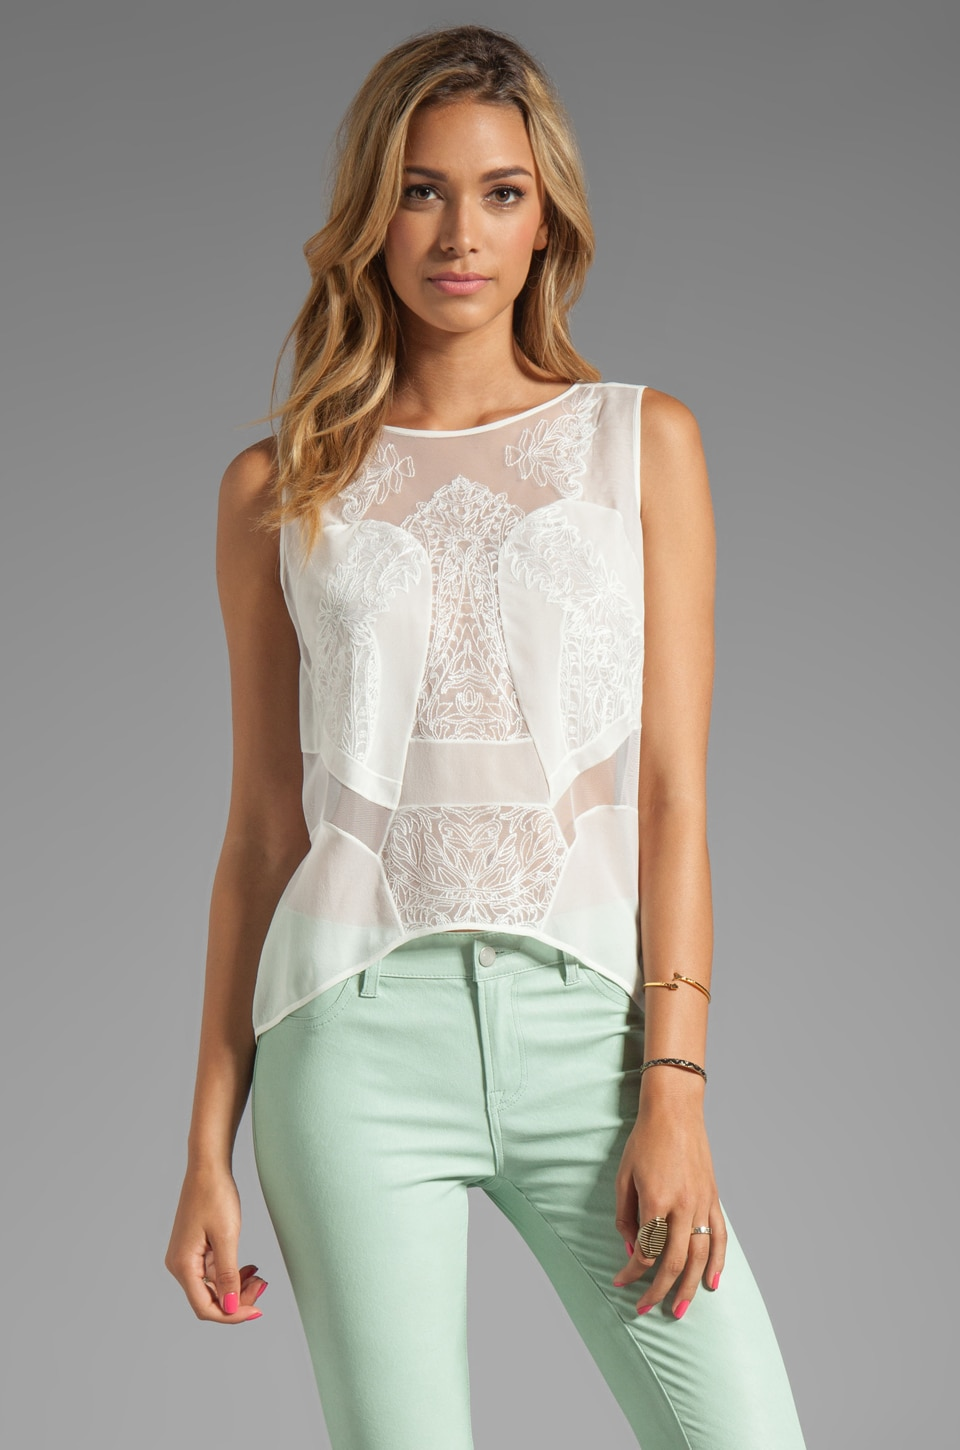 BCBGMAXAZRIA Lace Combo Top in Talc